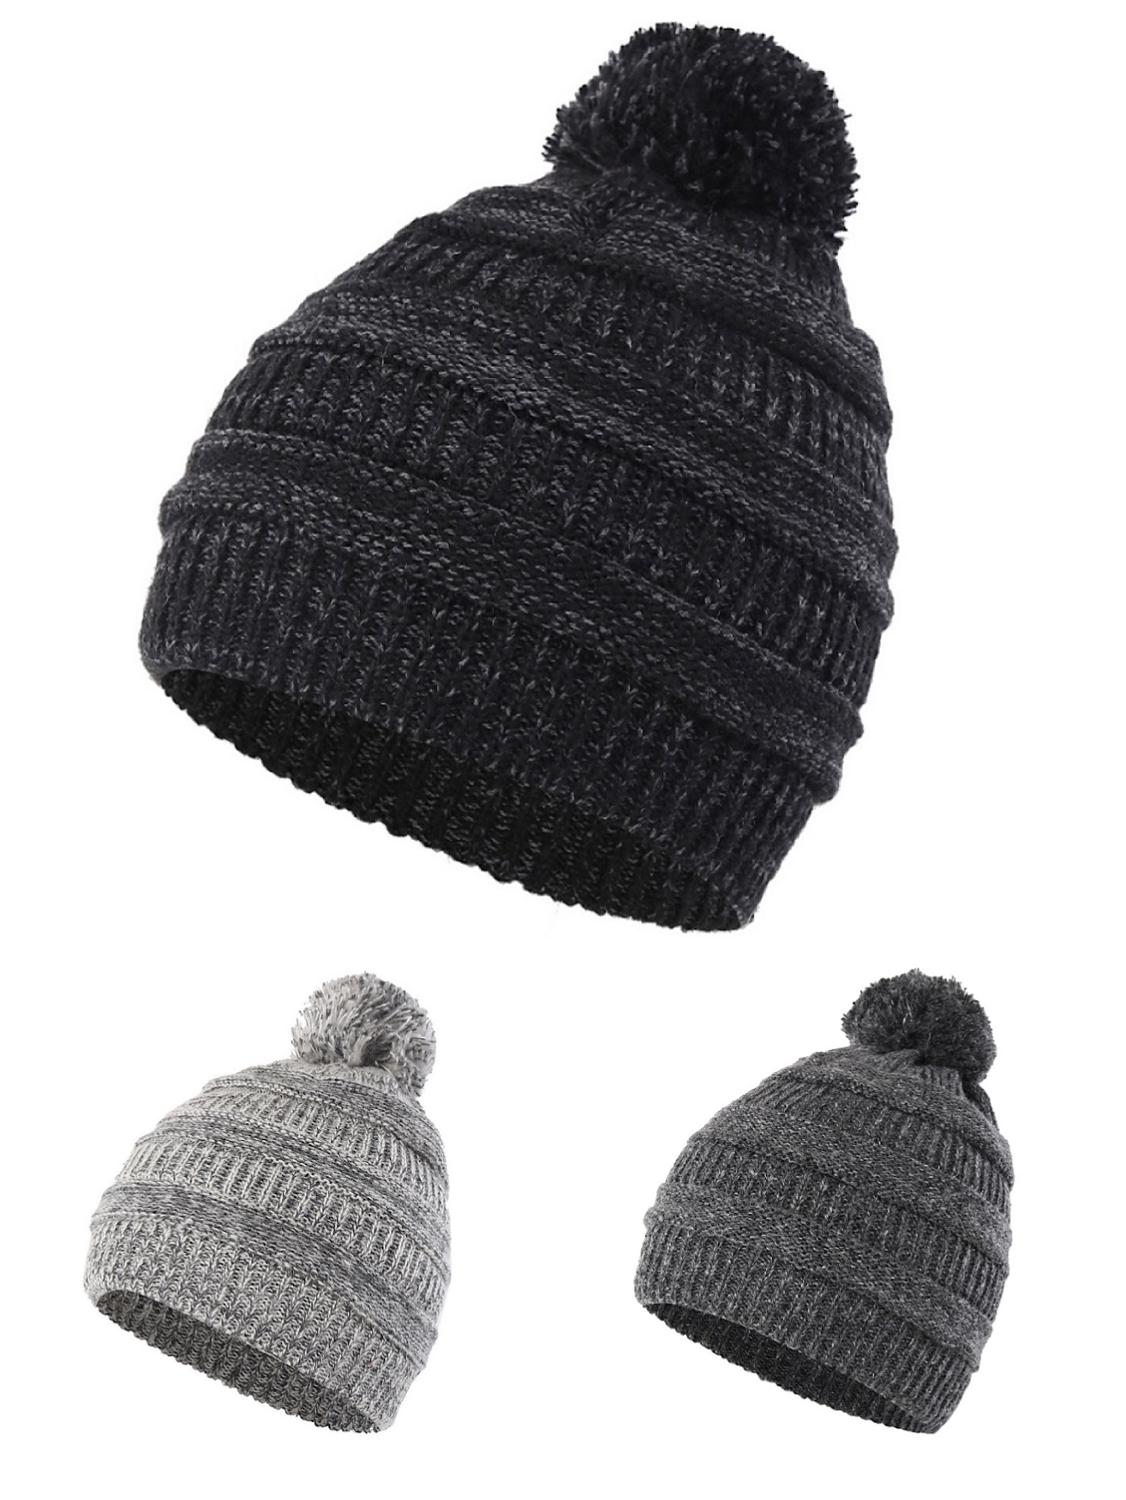 Men/'s Ladies Thermal Insulation Kitted Warm Winter Hiking Chunky Beanie Hat